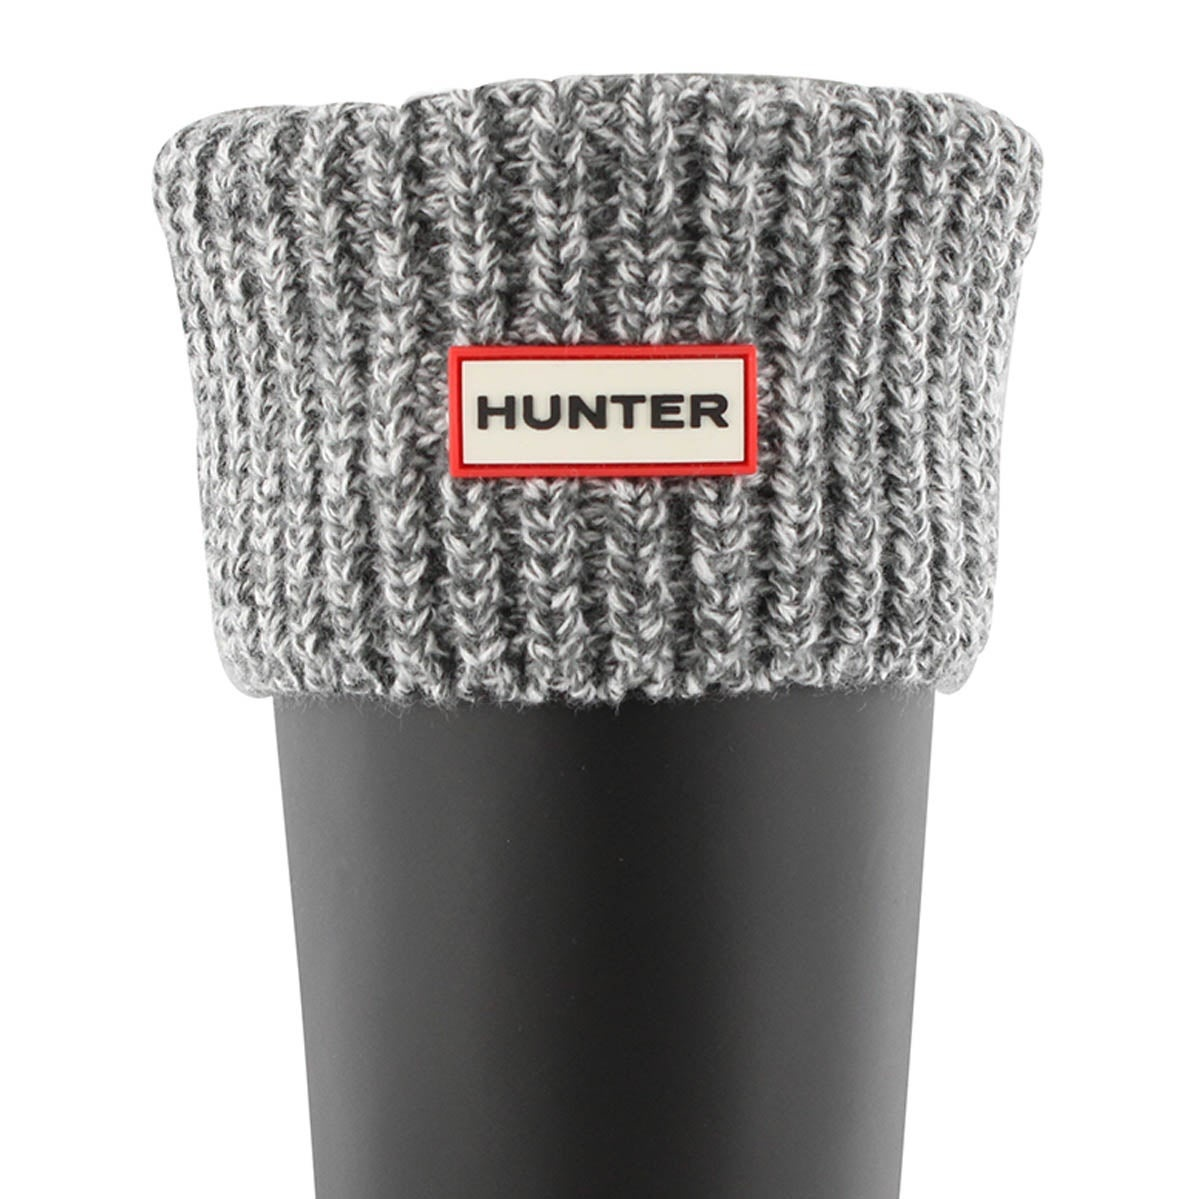 HUNTER HALF CARDIGAN BOOT SOCK